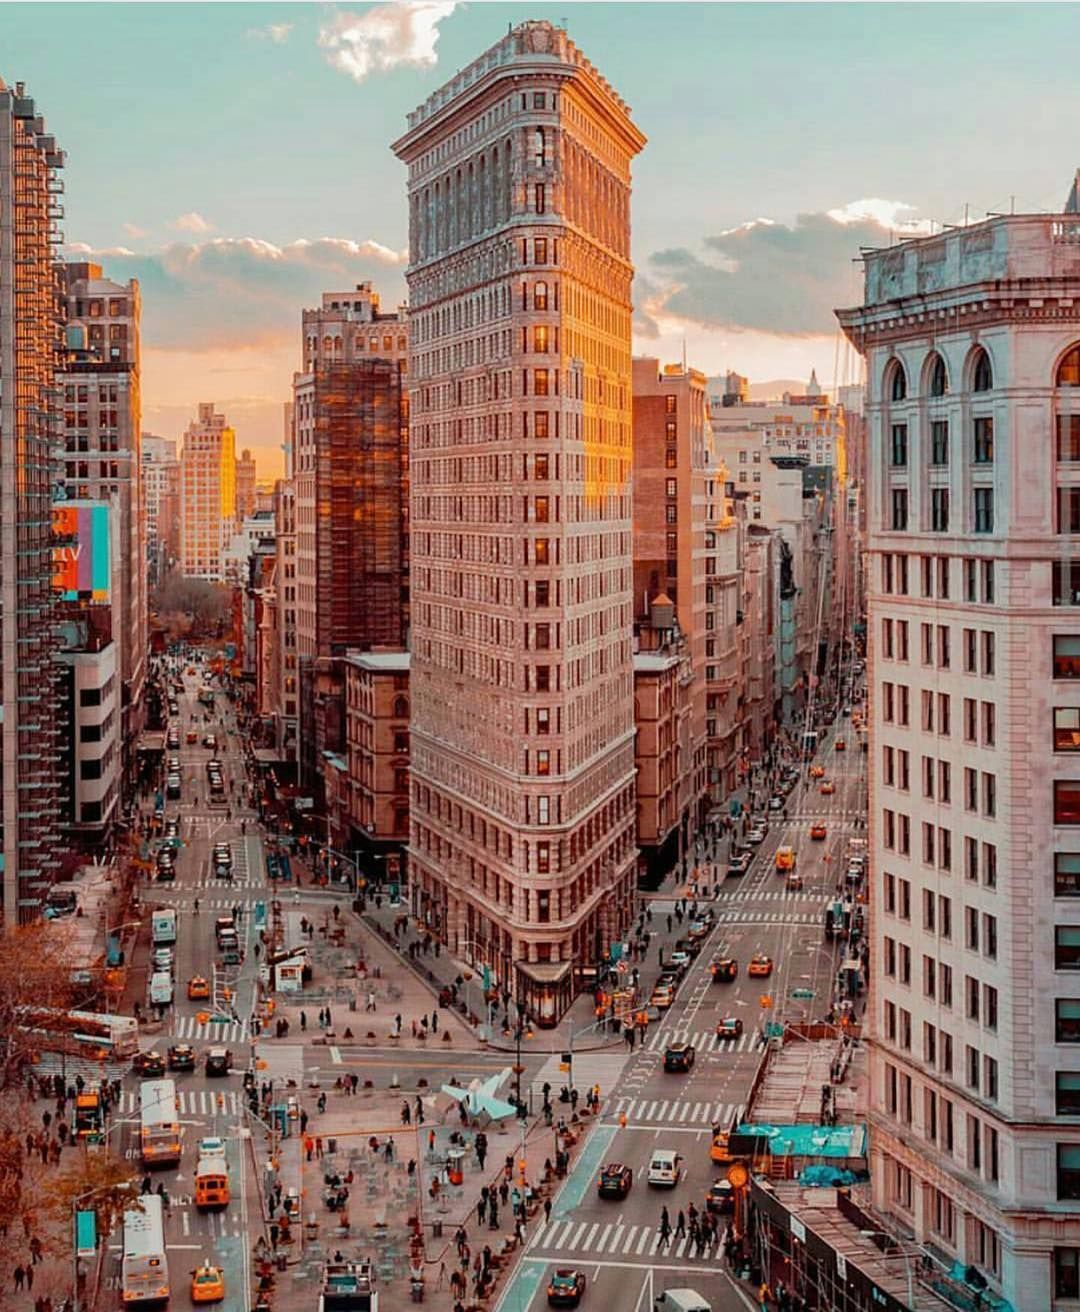 Earth Image On Instagram Flatiron Building During Sunset New York City Tag Friends You Want To Take Here New York Flatiron Building New York City